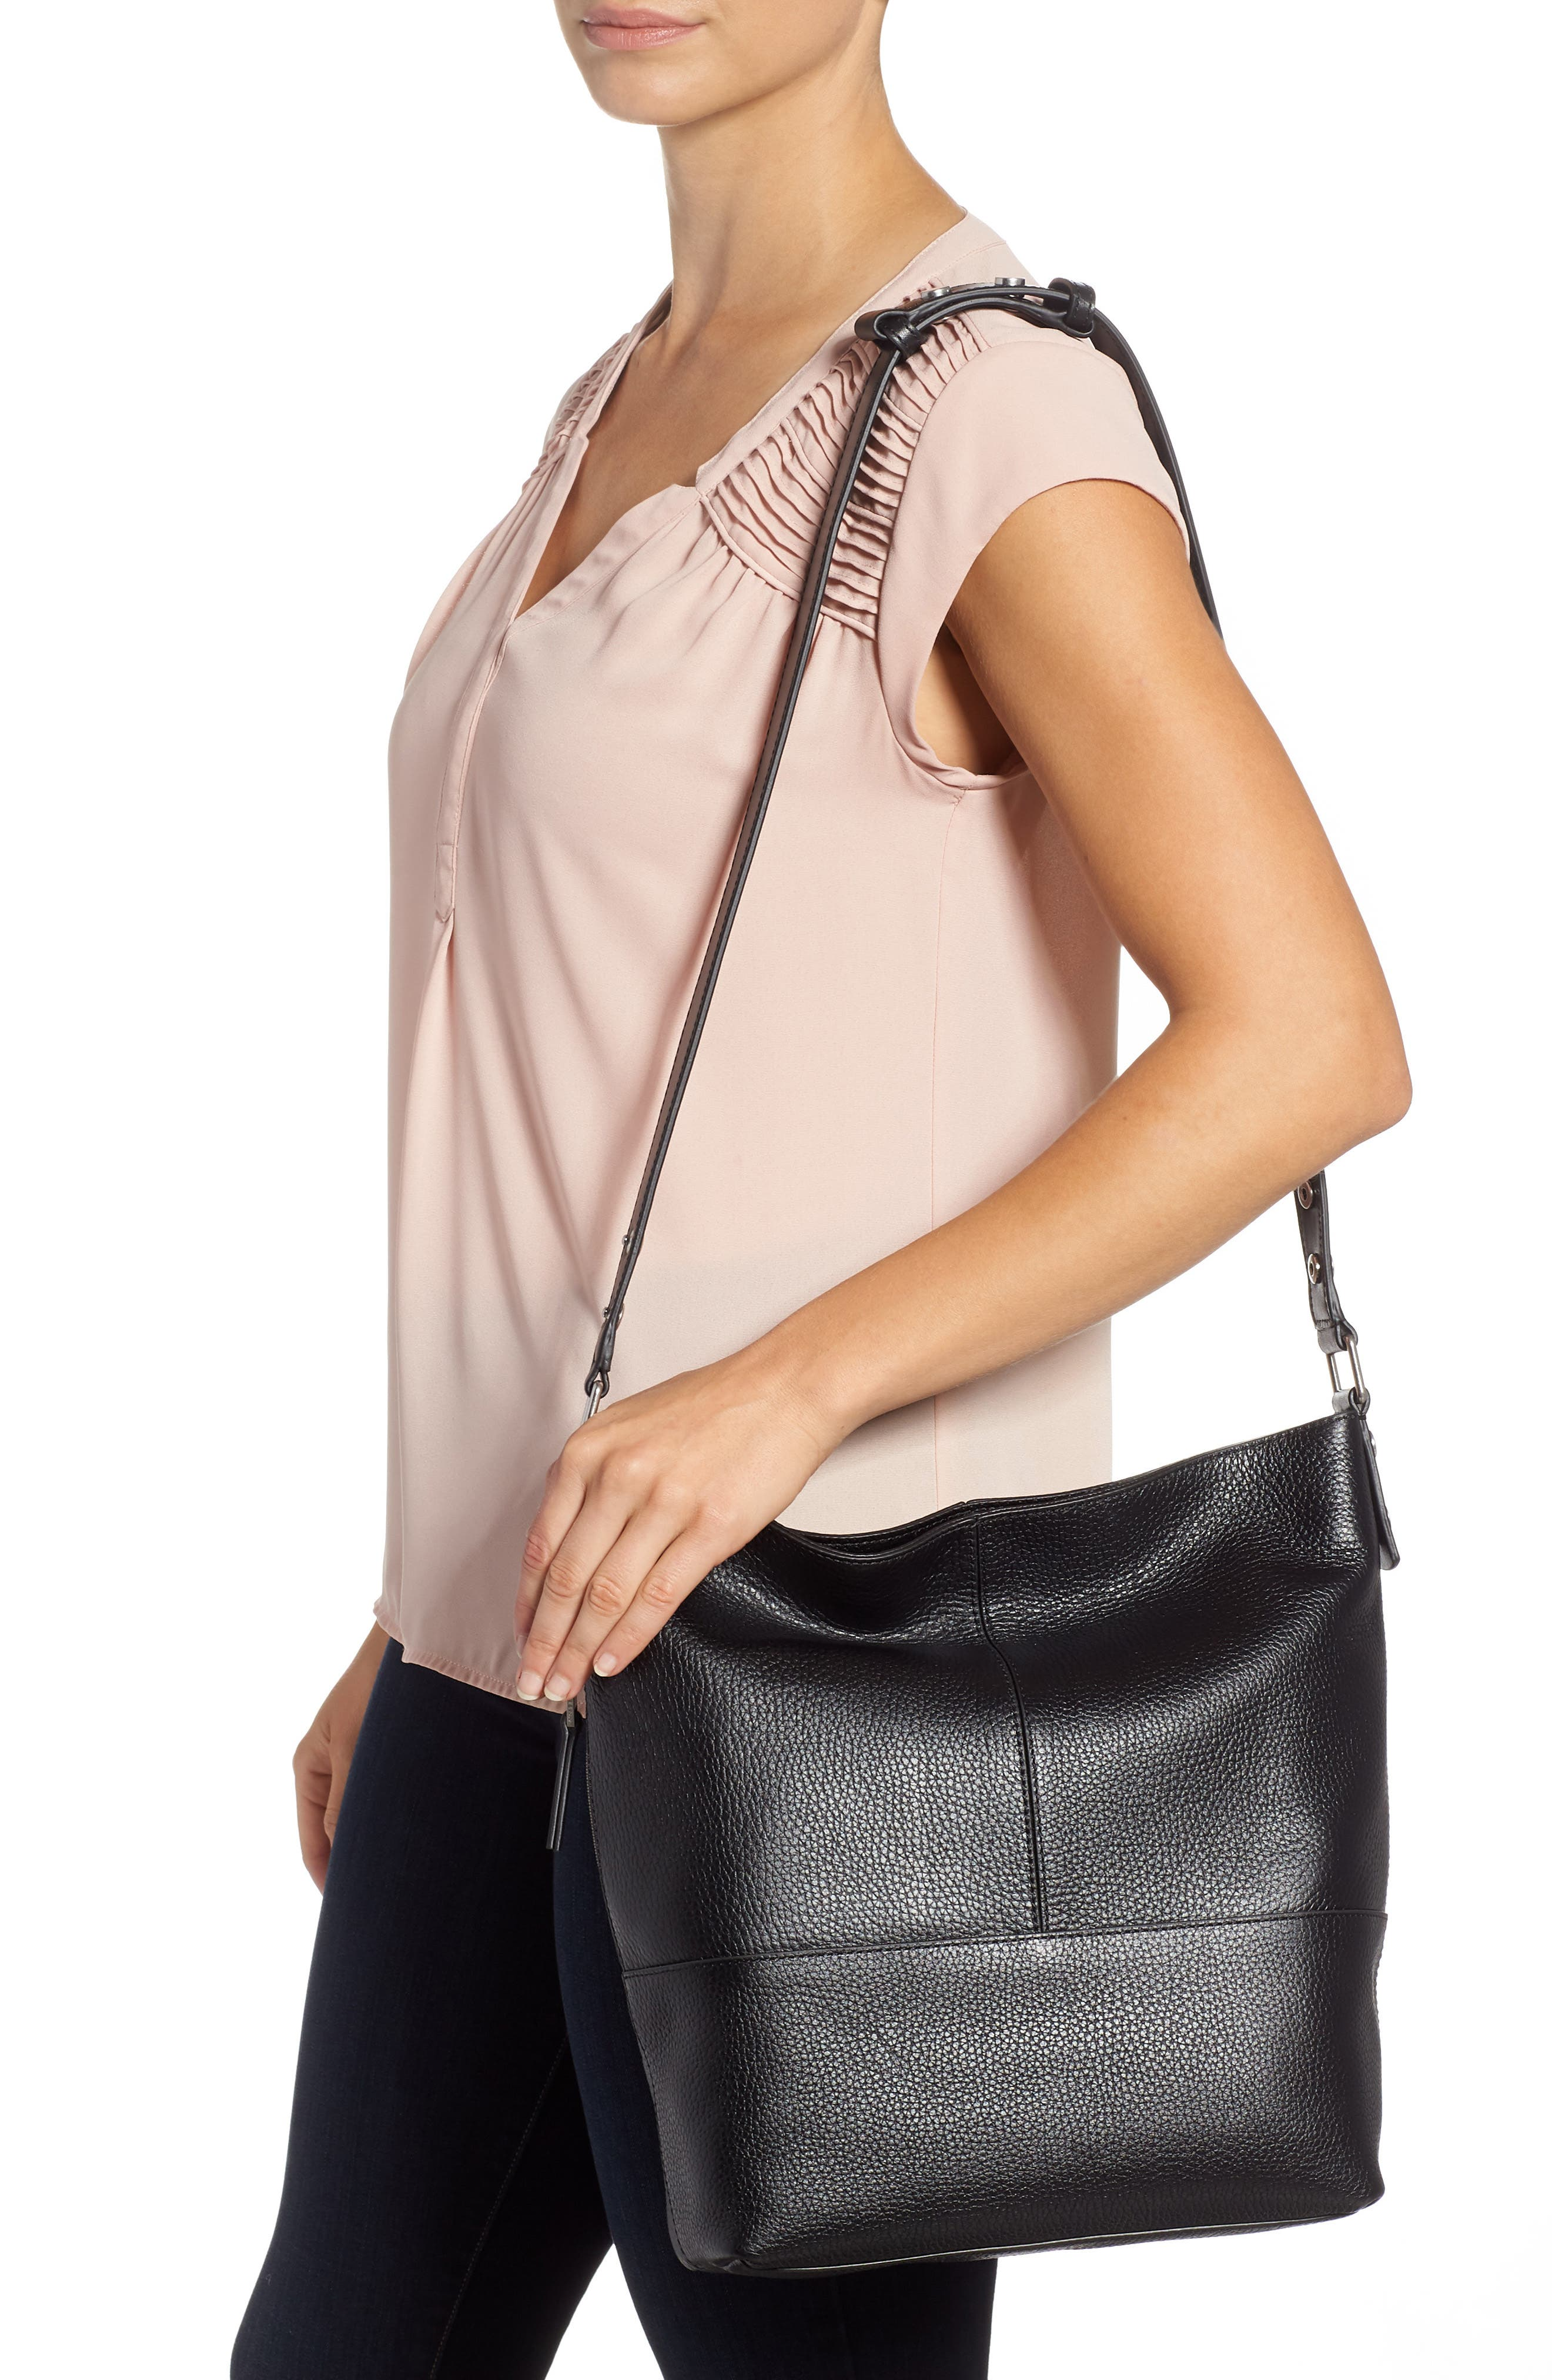 Sydney Leather Convertible Hobo,                             Alternate thumbnail 2, color,                             001